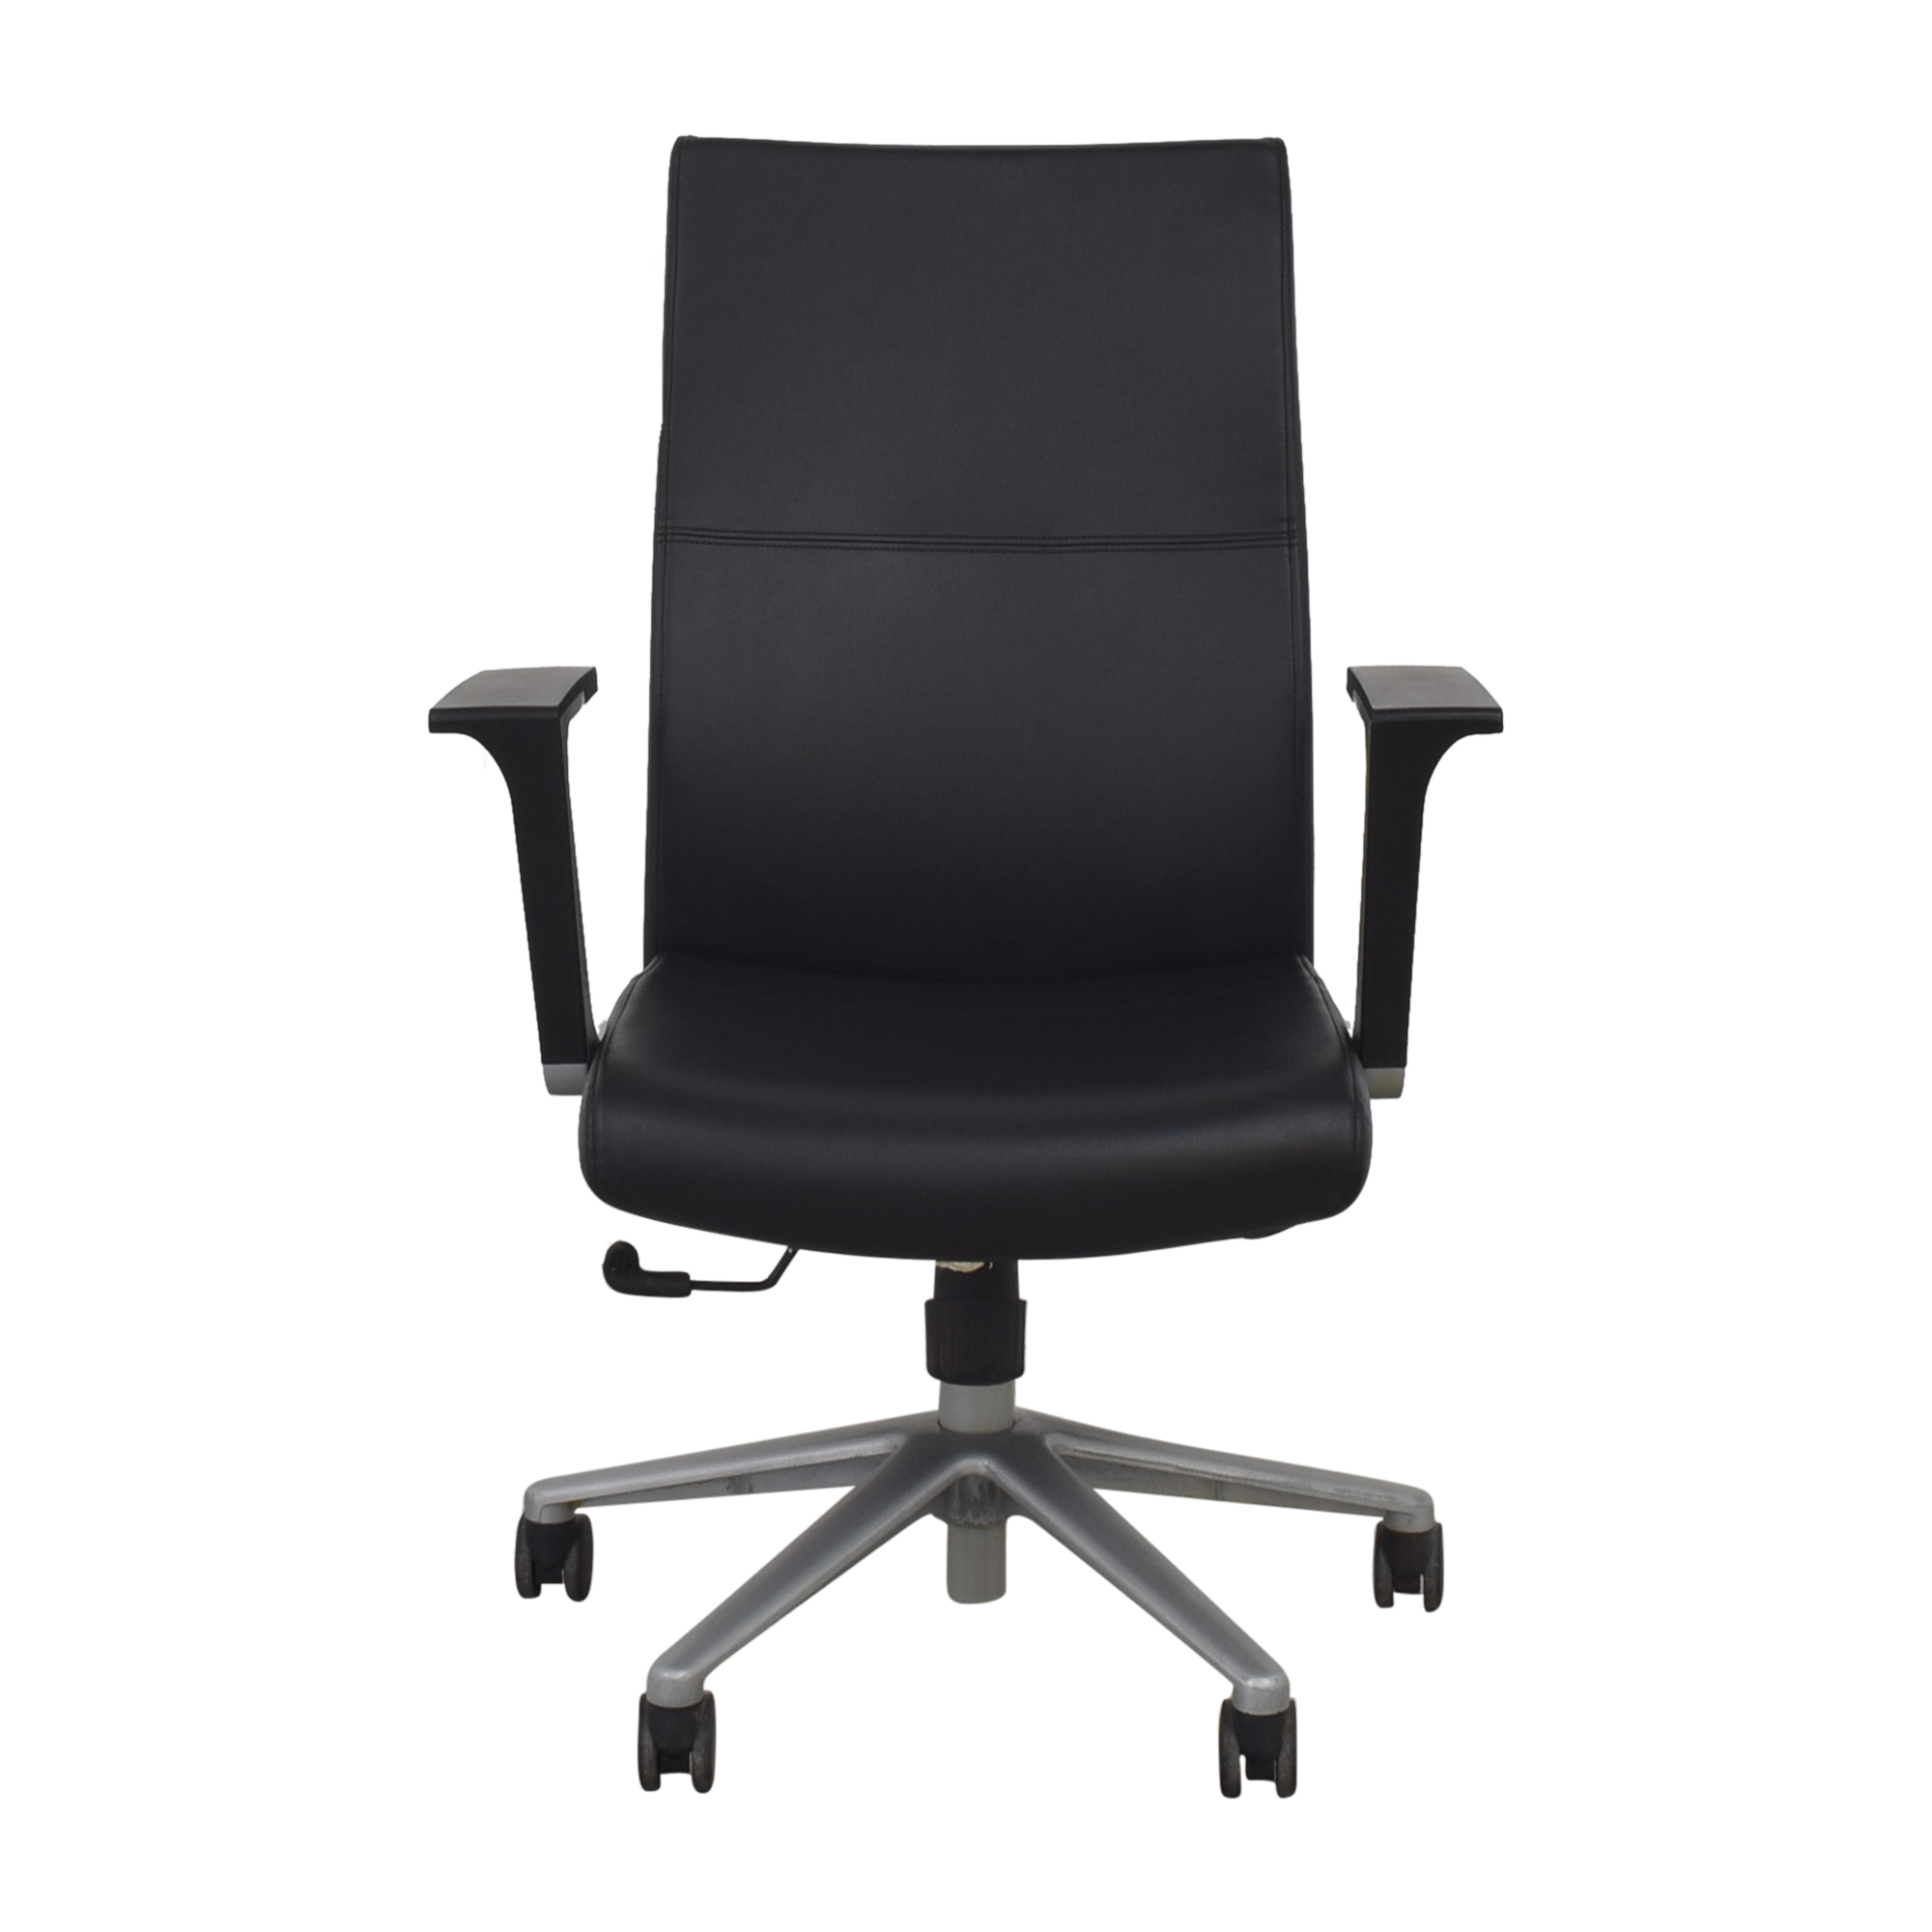 SitOnIt SitOnIt Prava Office Chair ct